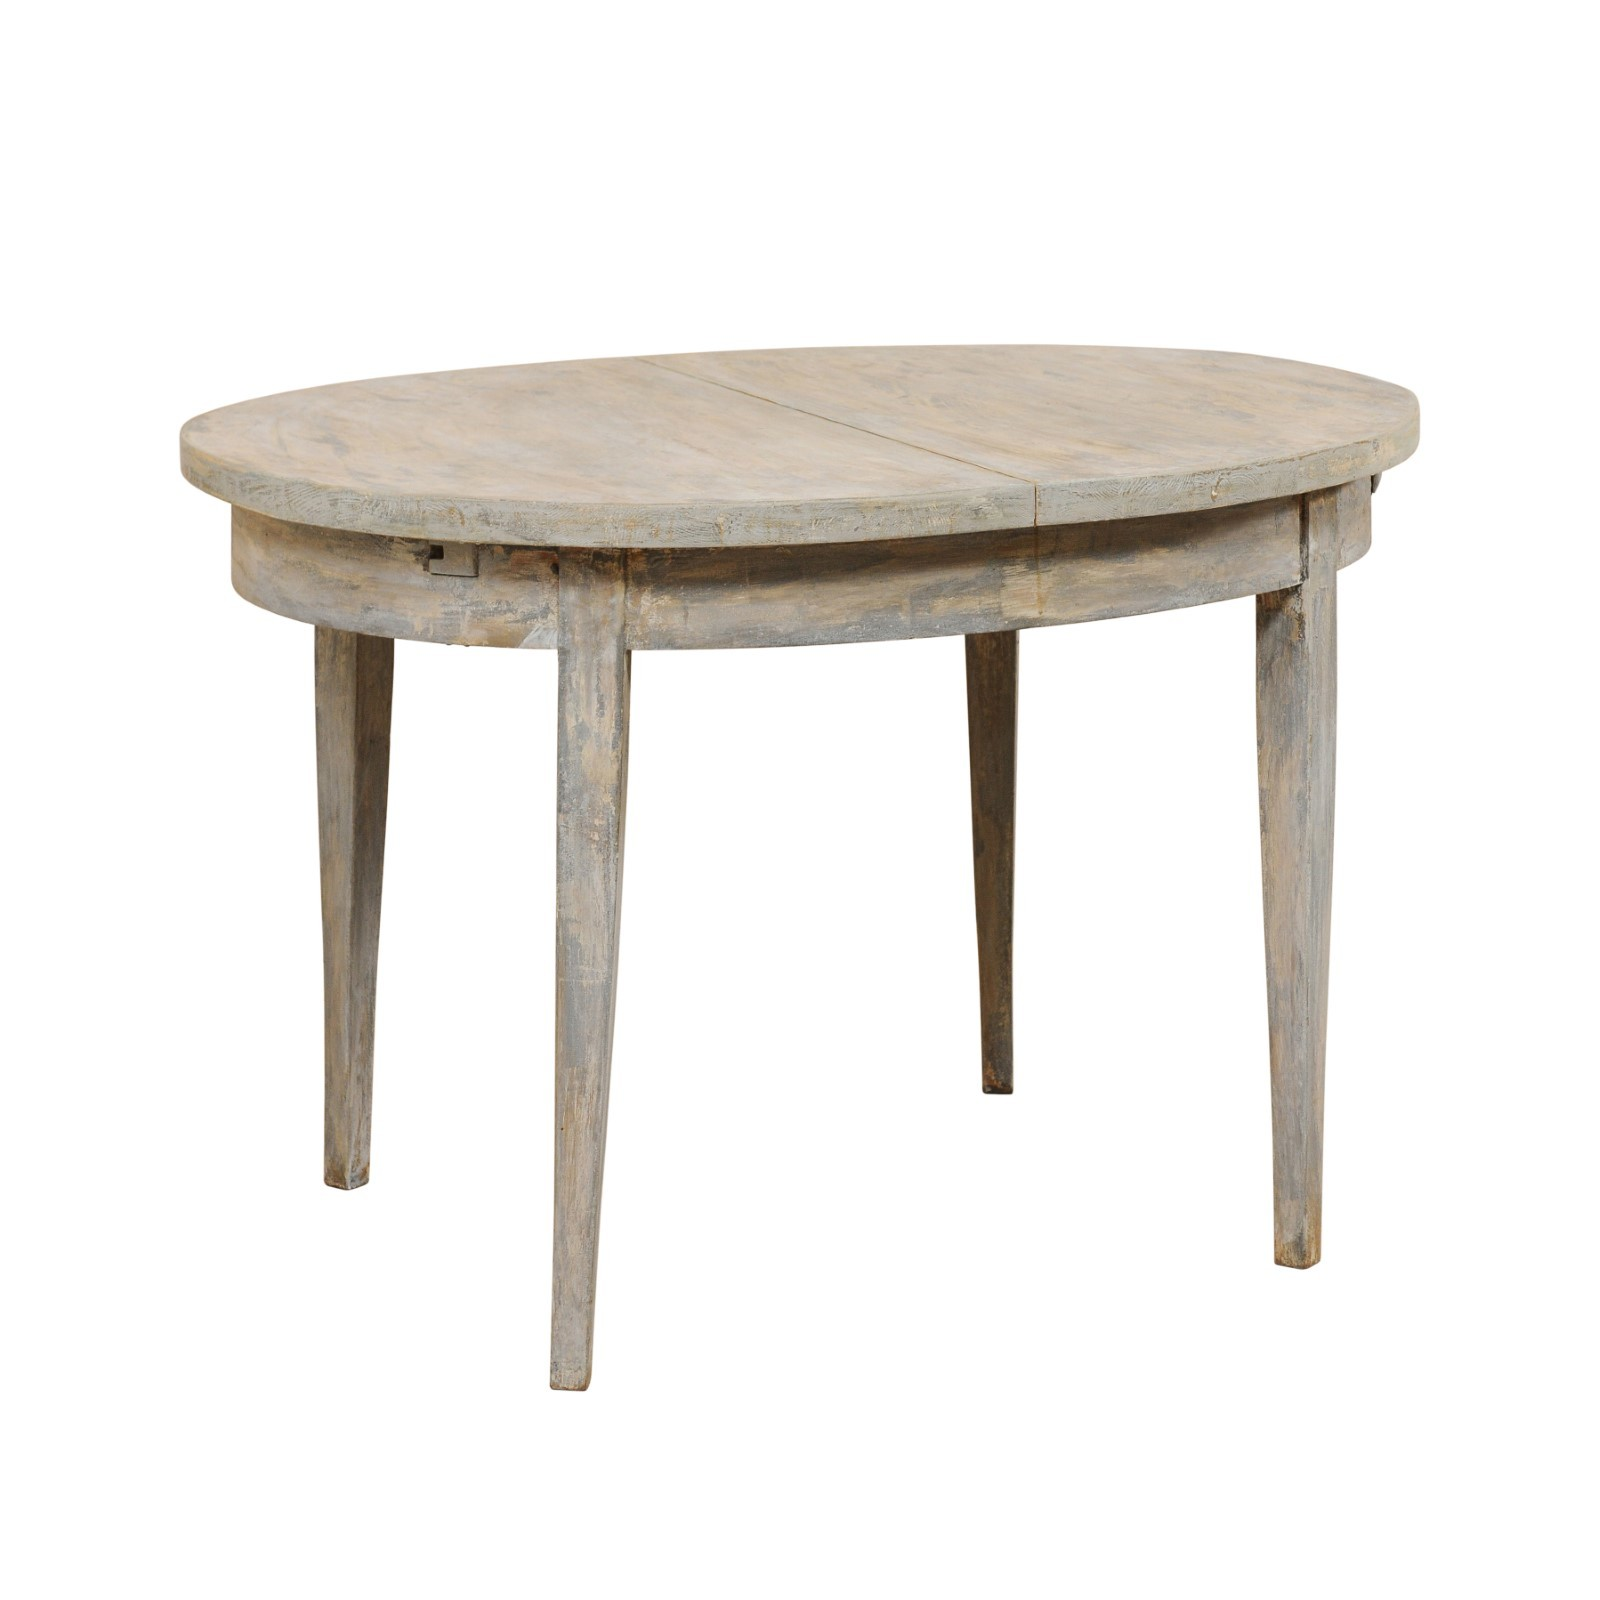 Swedish Oval Wood Table w/ Clean Lines